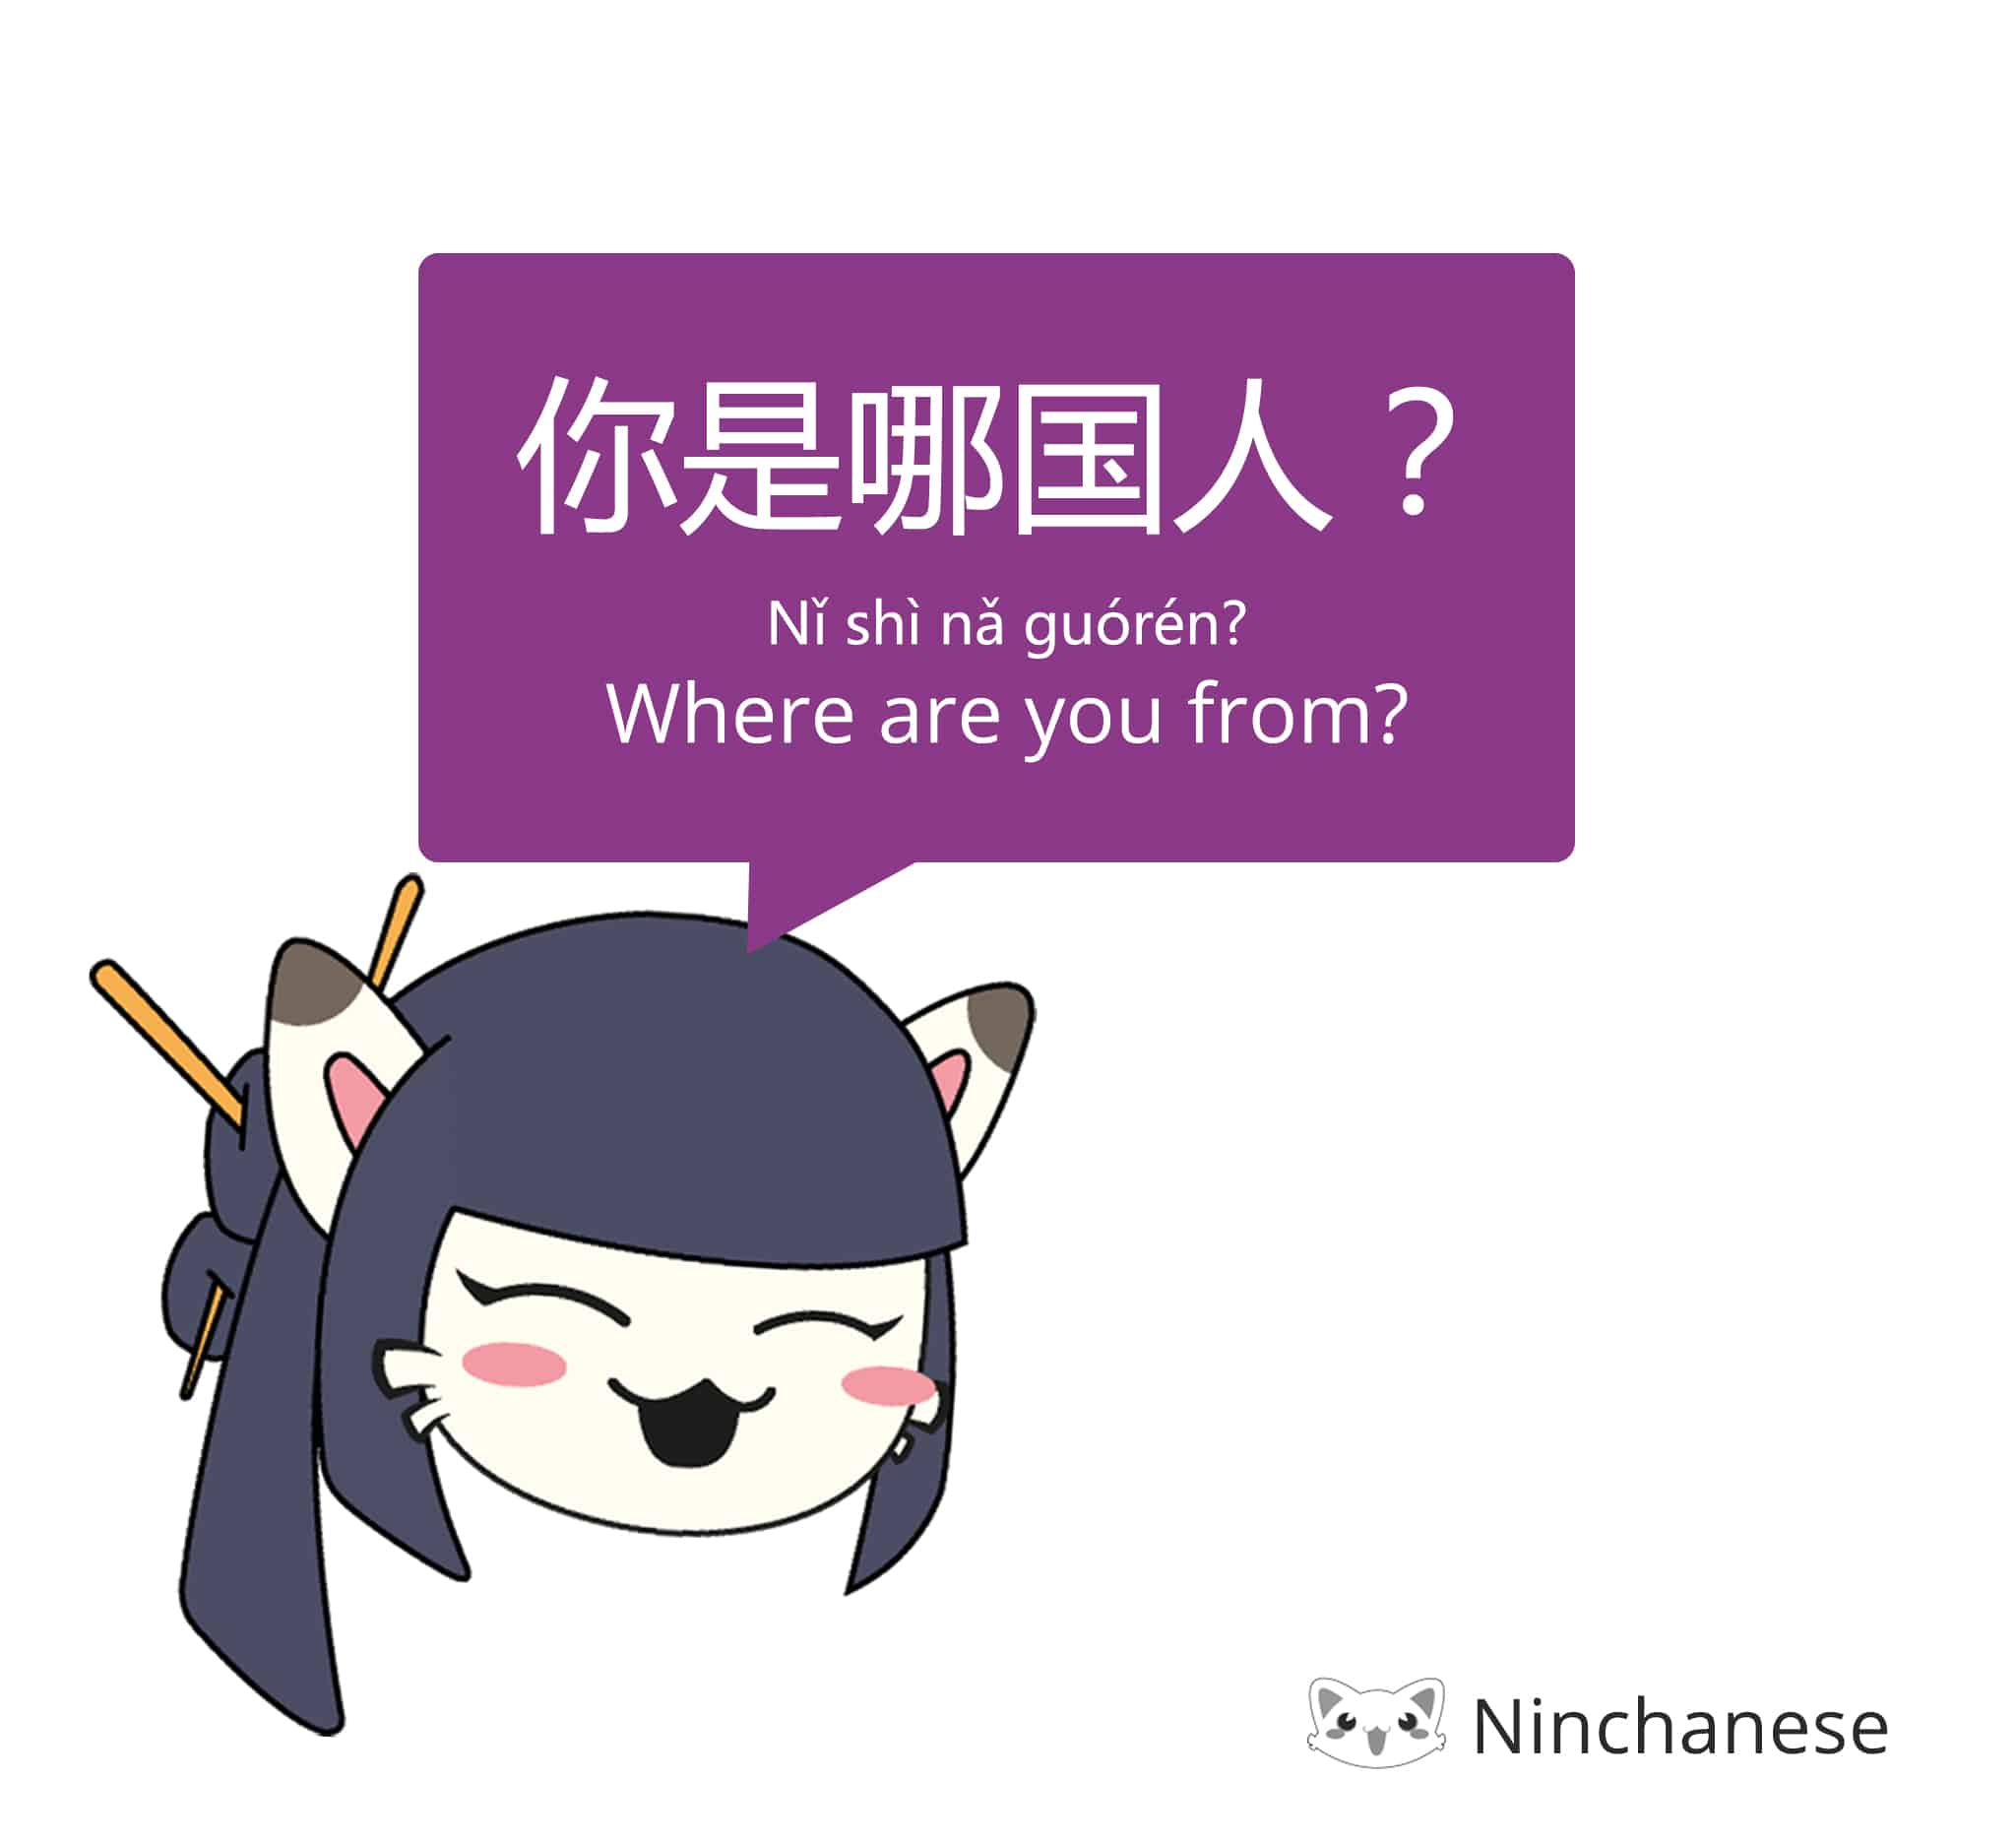 where are you from in Chinese - 你是哪国人